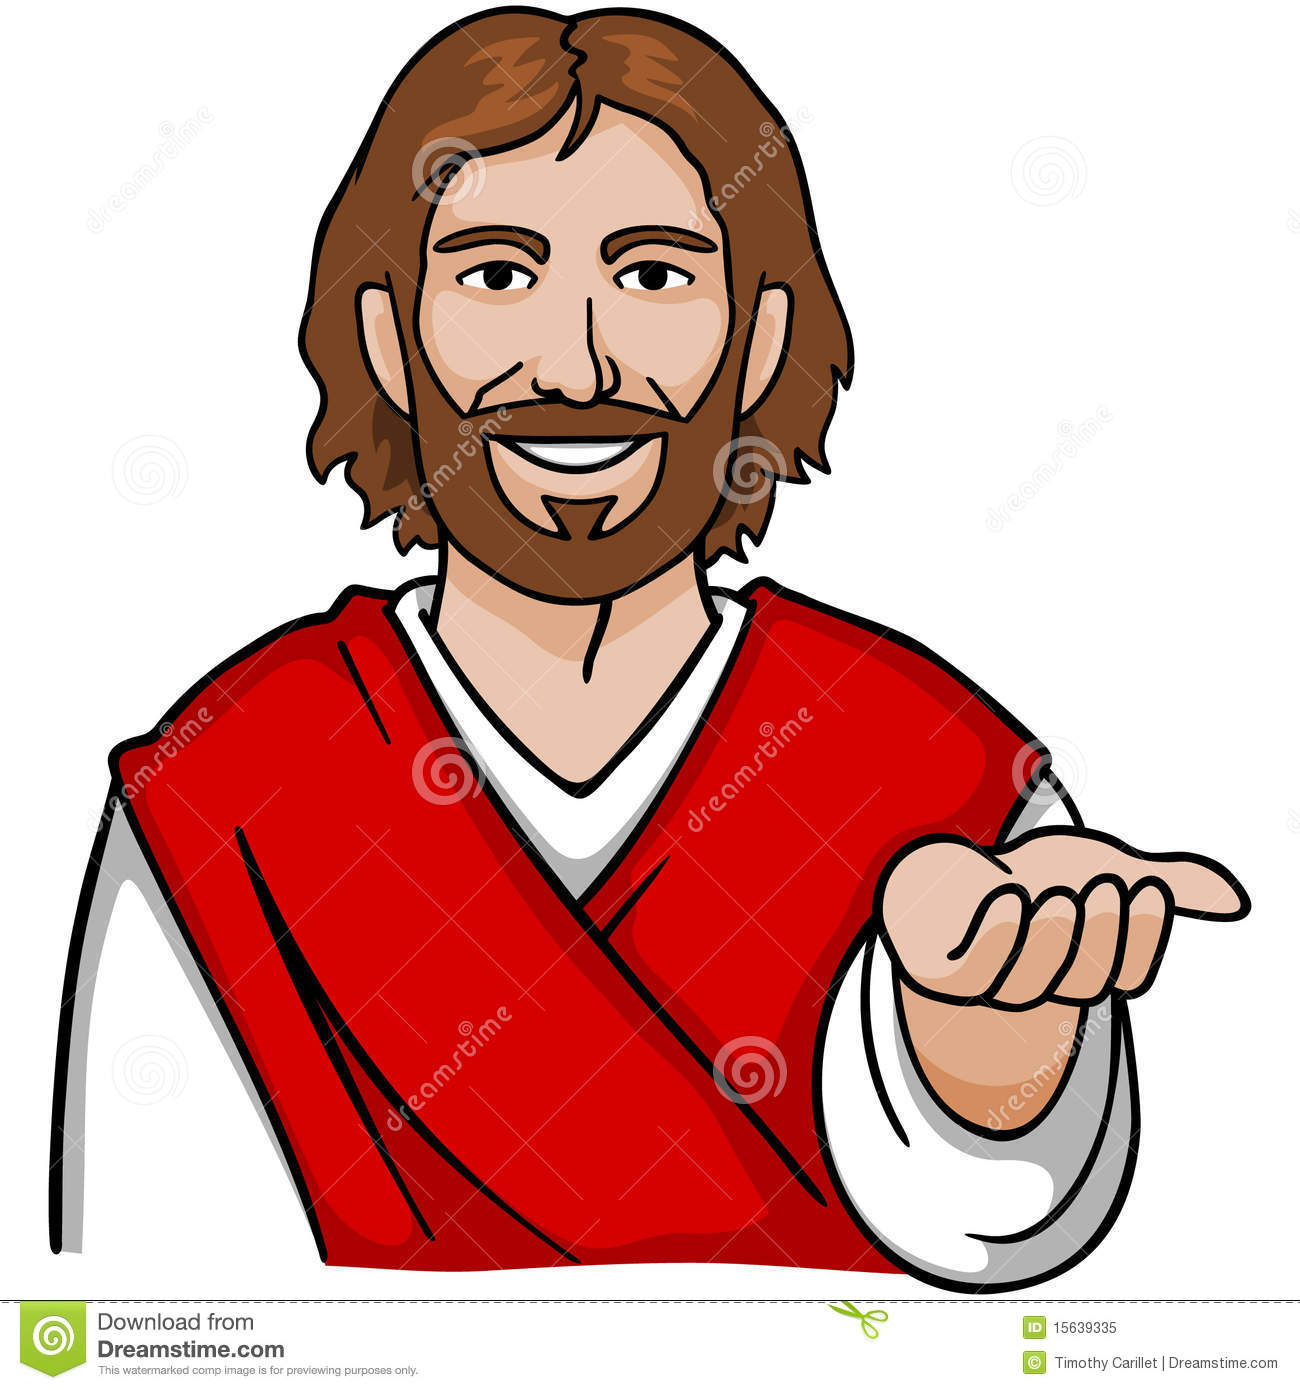 clipart cartoon jesus - photo #23